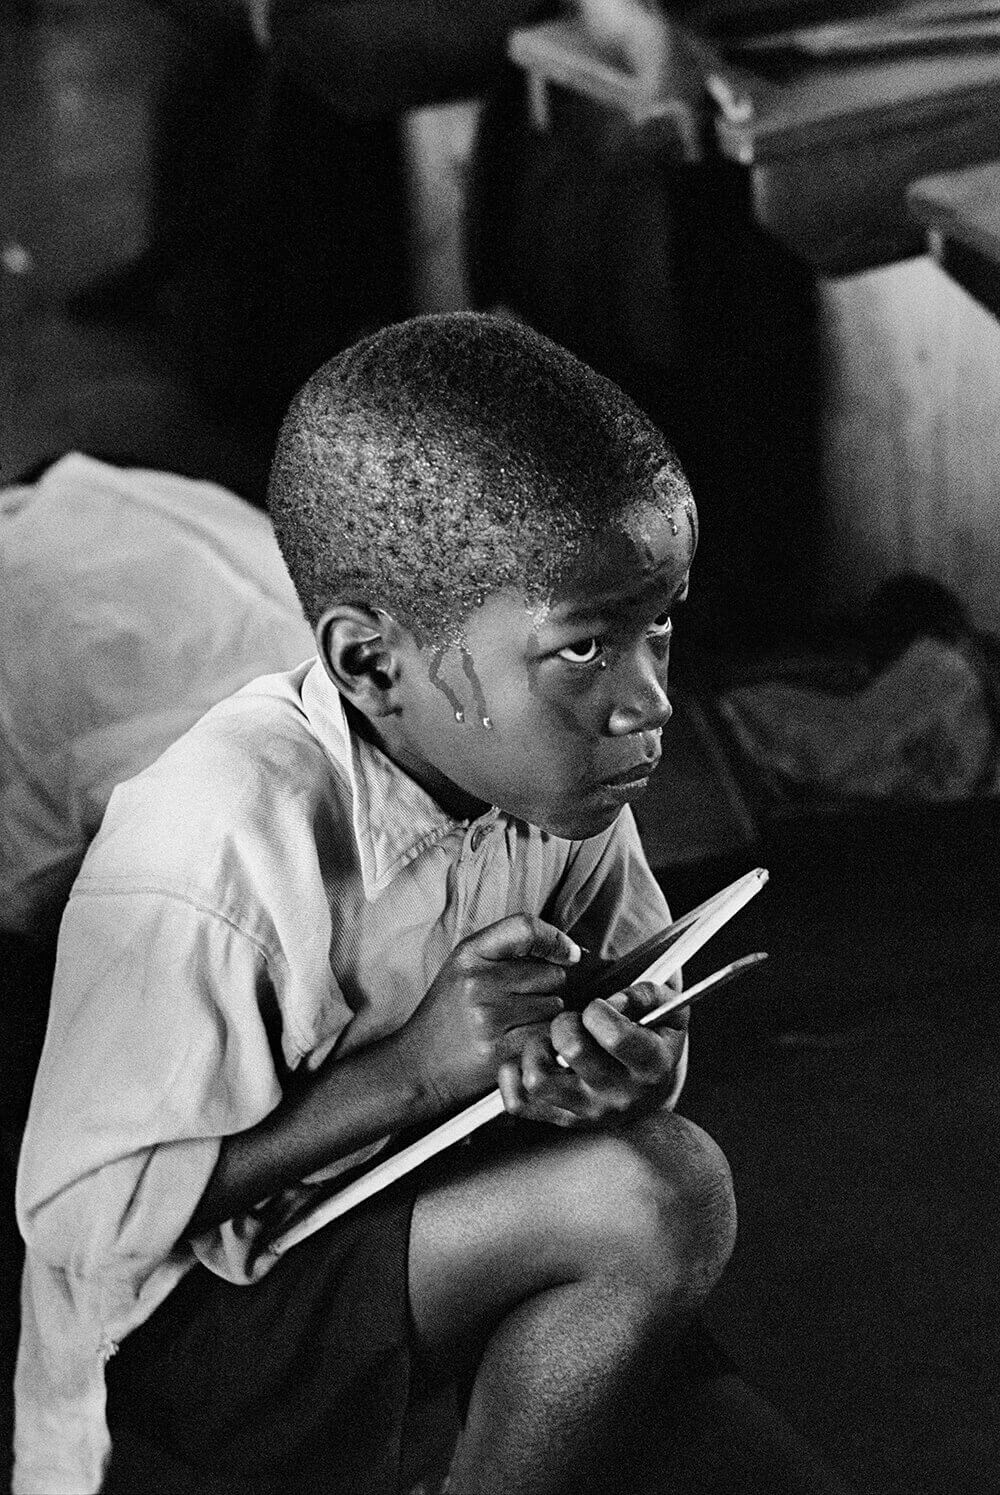 Ernest Cole, Earnest boy squats on haunches to follow lesson in heat of packed classroom, Gauteng [Transvaal], South Africa, c.1965 (from The House of Bondage)